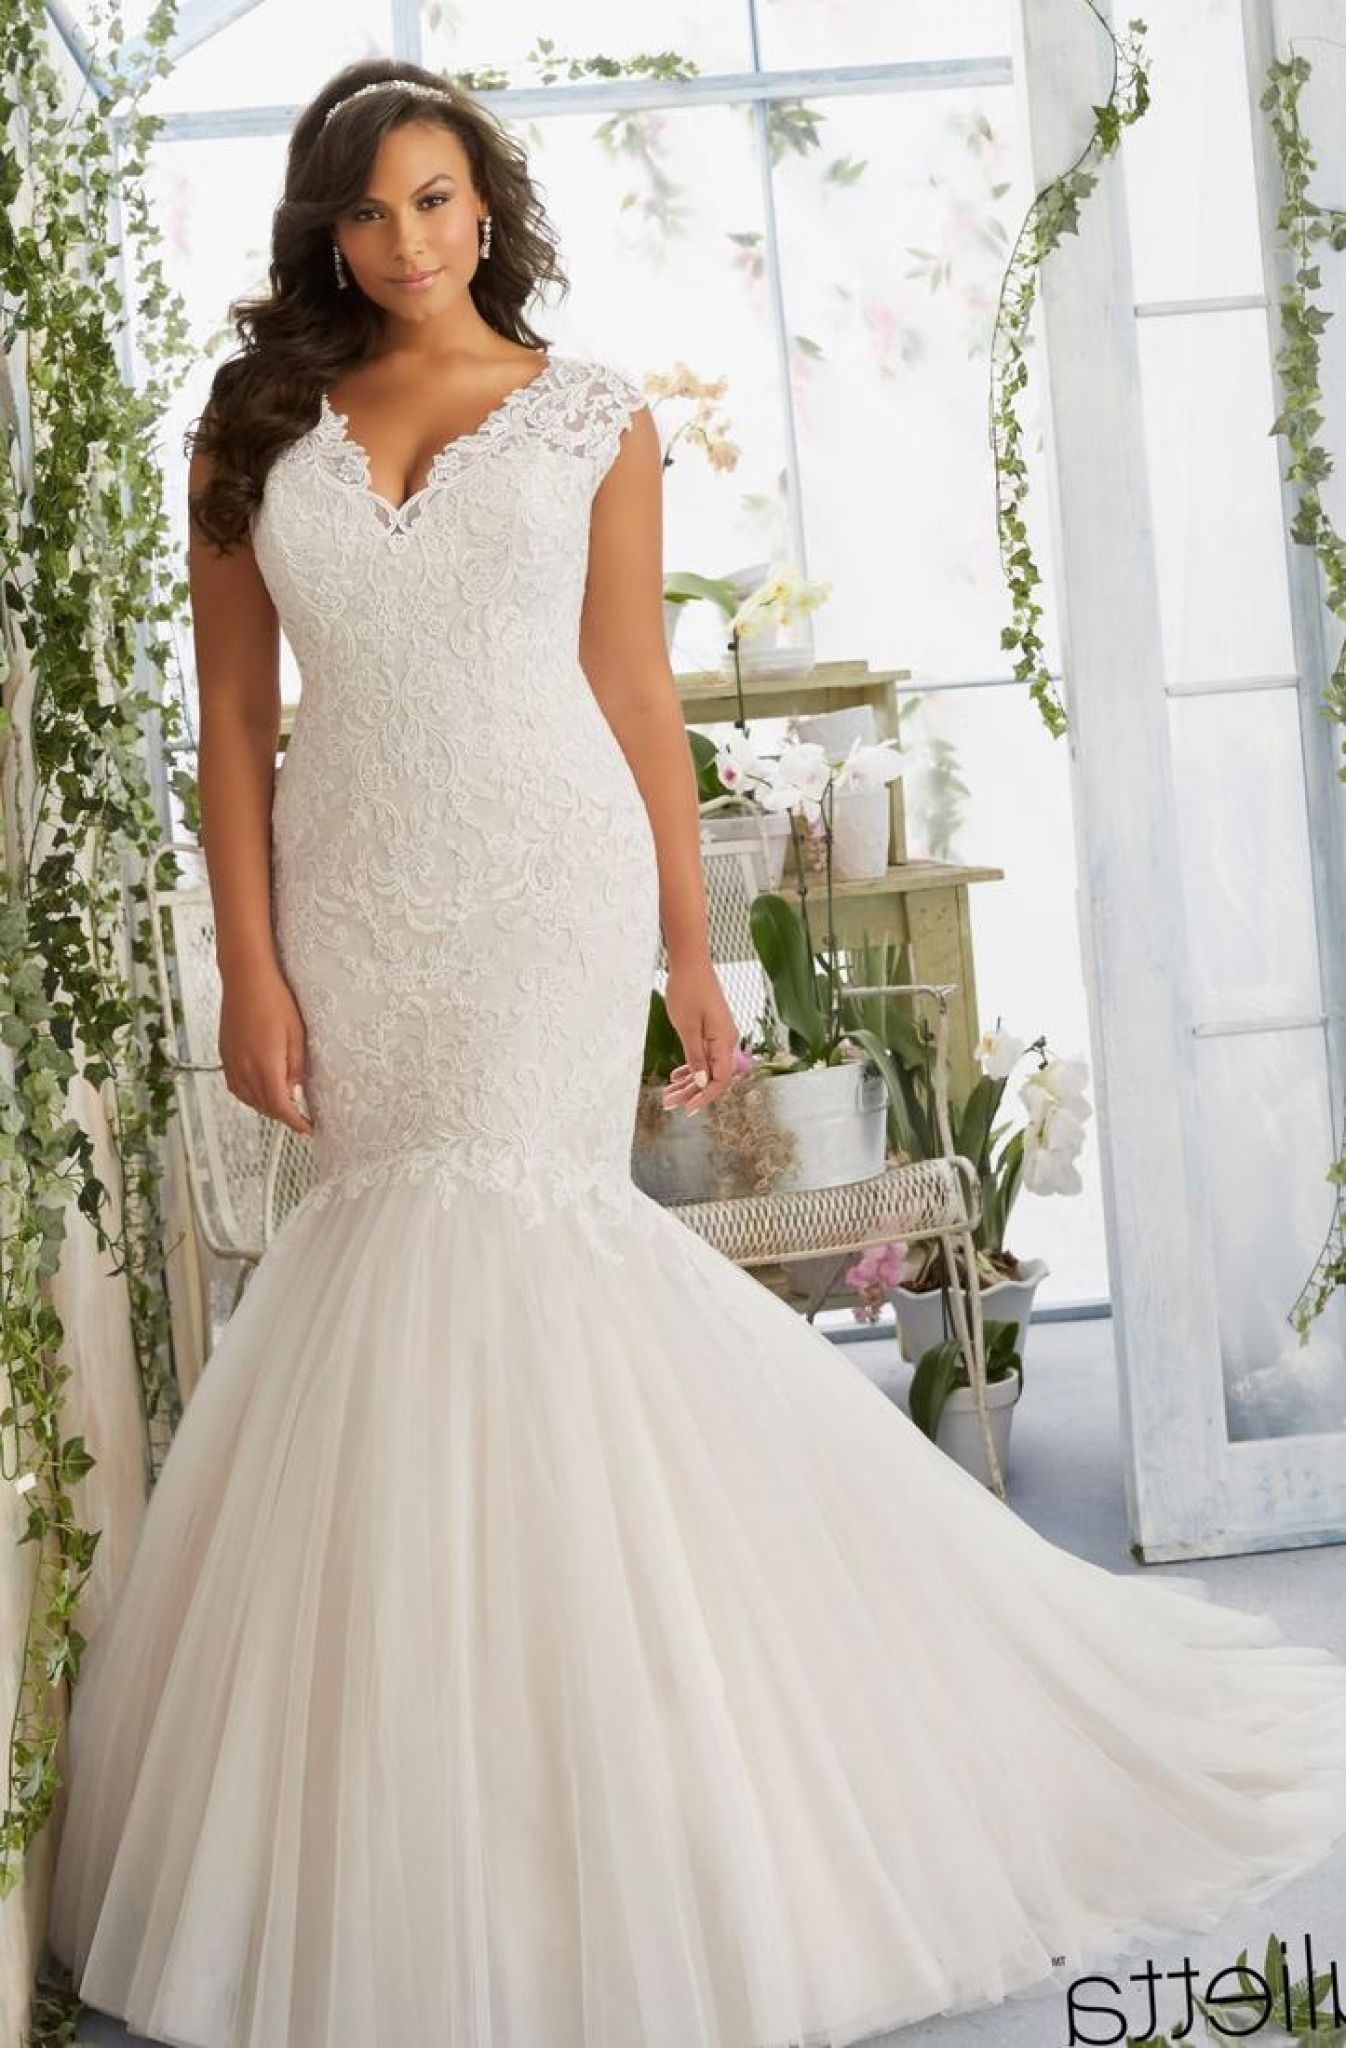 cdc99bf91e0 92+ Cheap Plus Size Wedding Dresses Dallas Tx - Download By ...